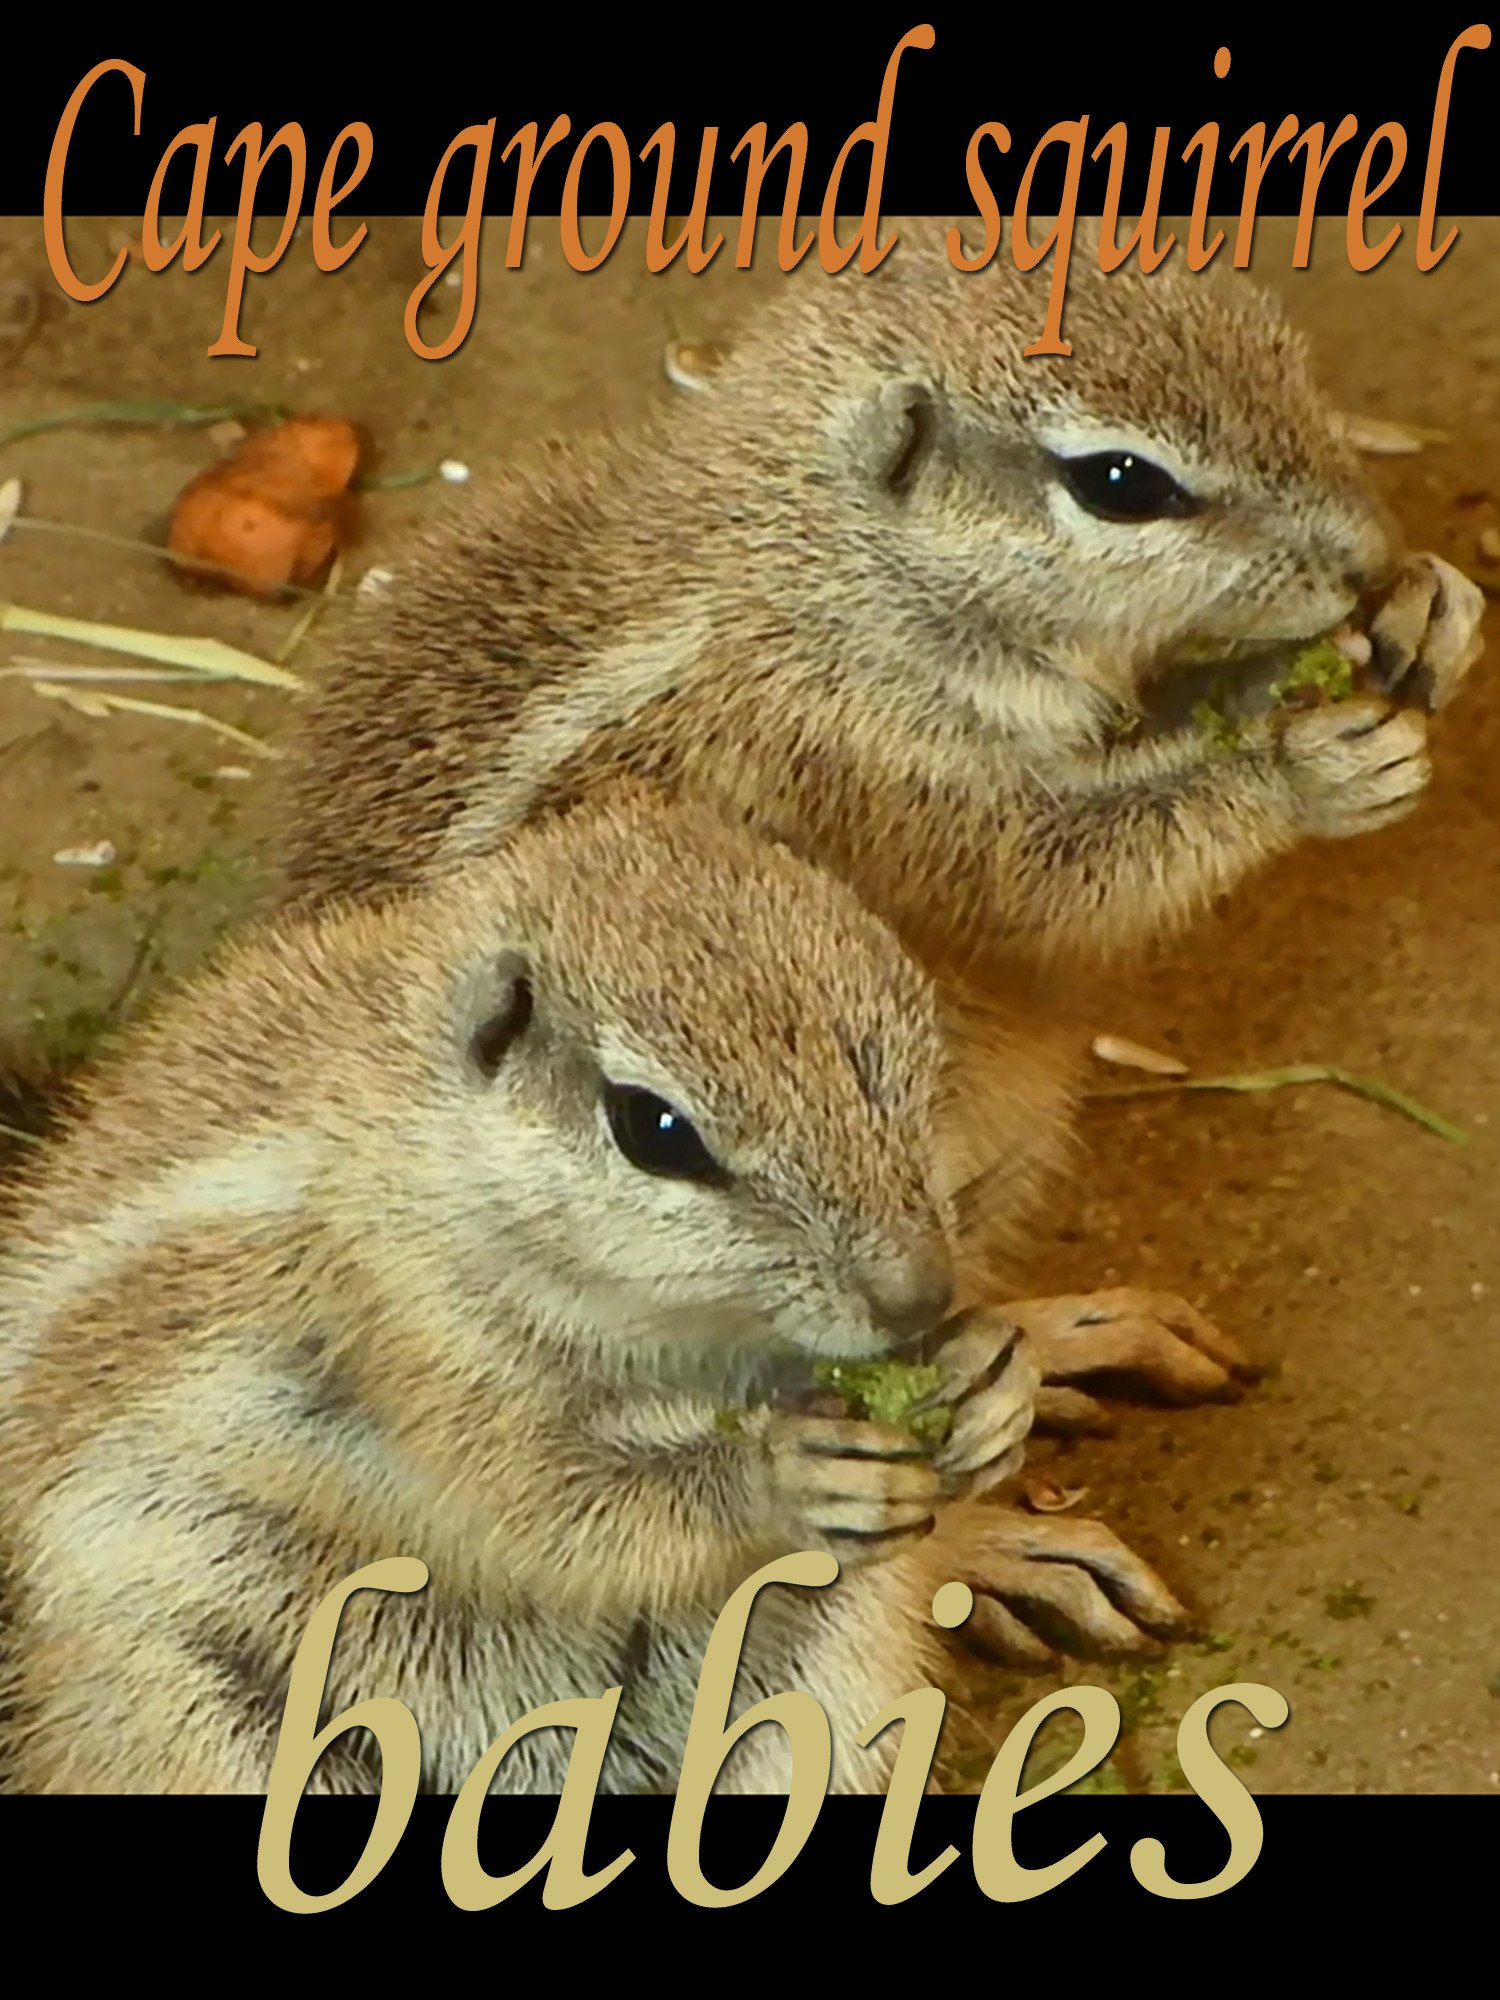 Cape ground squirrel. Babies